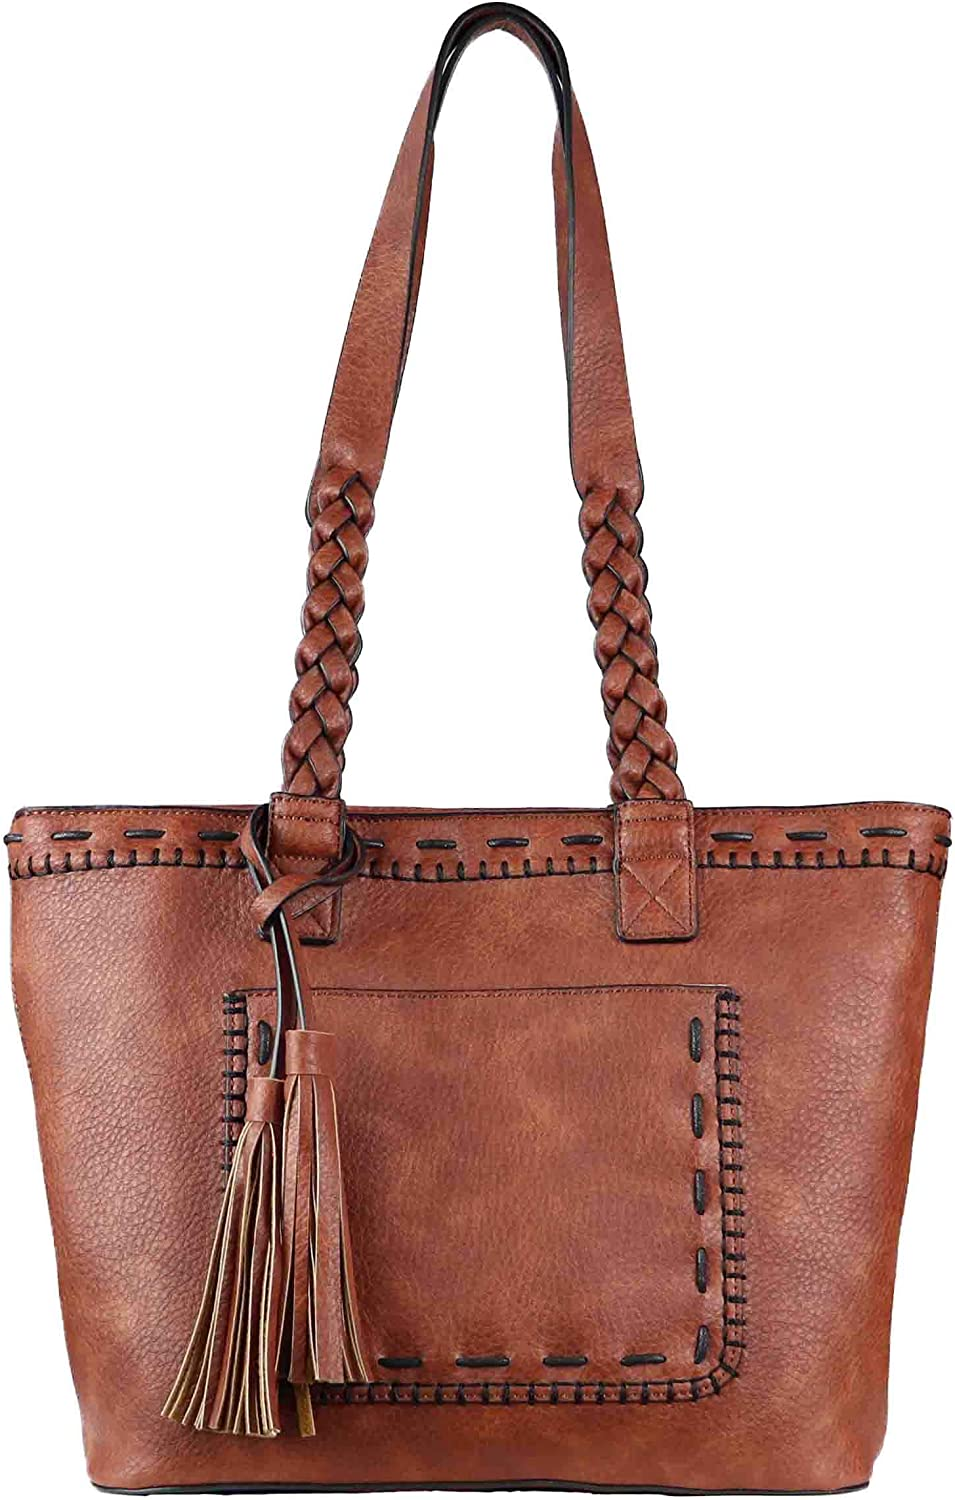 Medium Concealed Carry Tote Handmade With Symphony In Hue Napkins